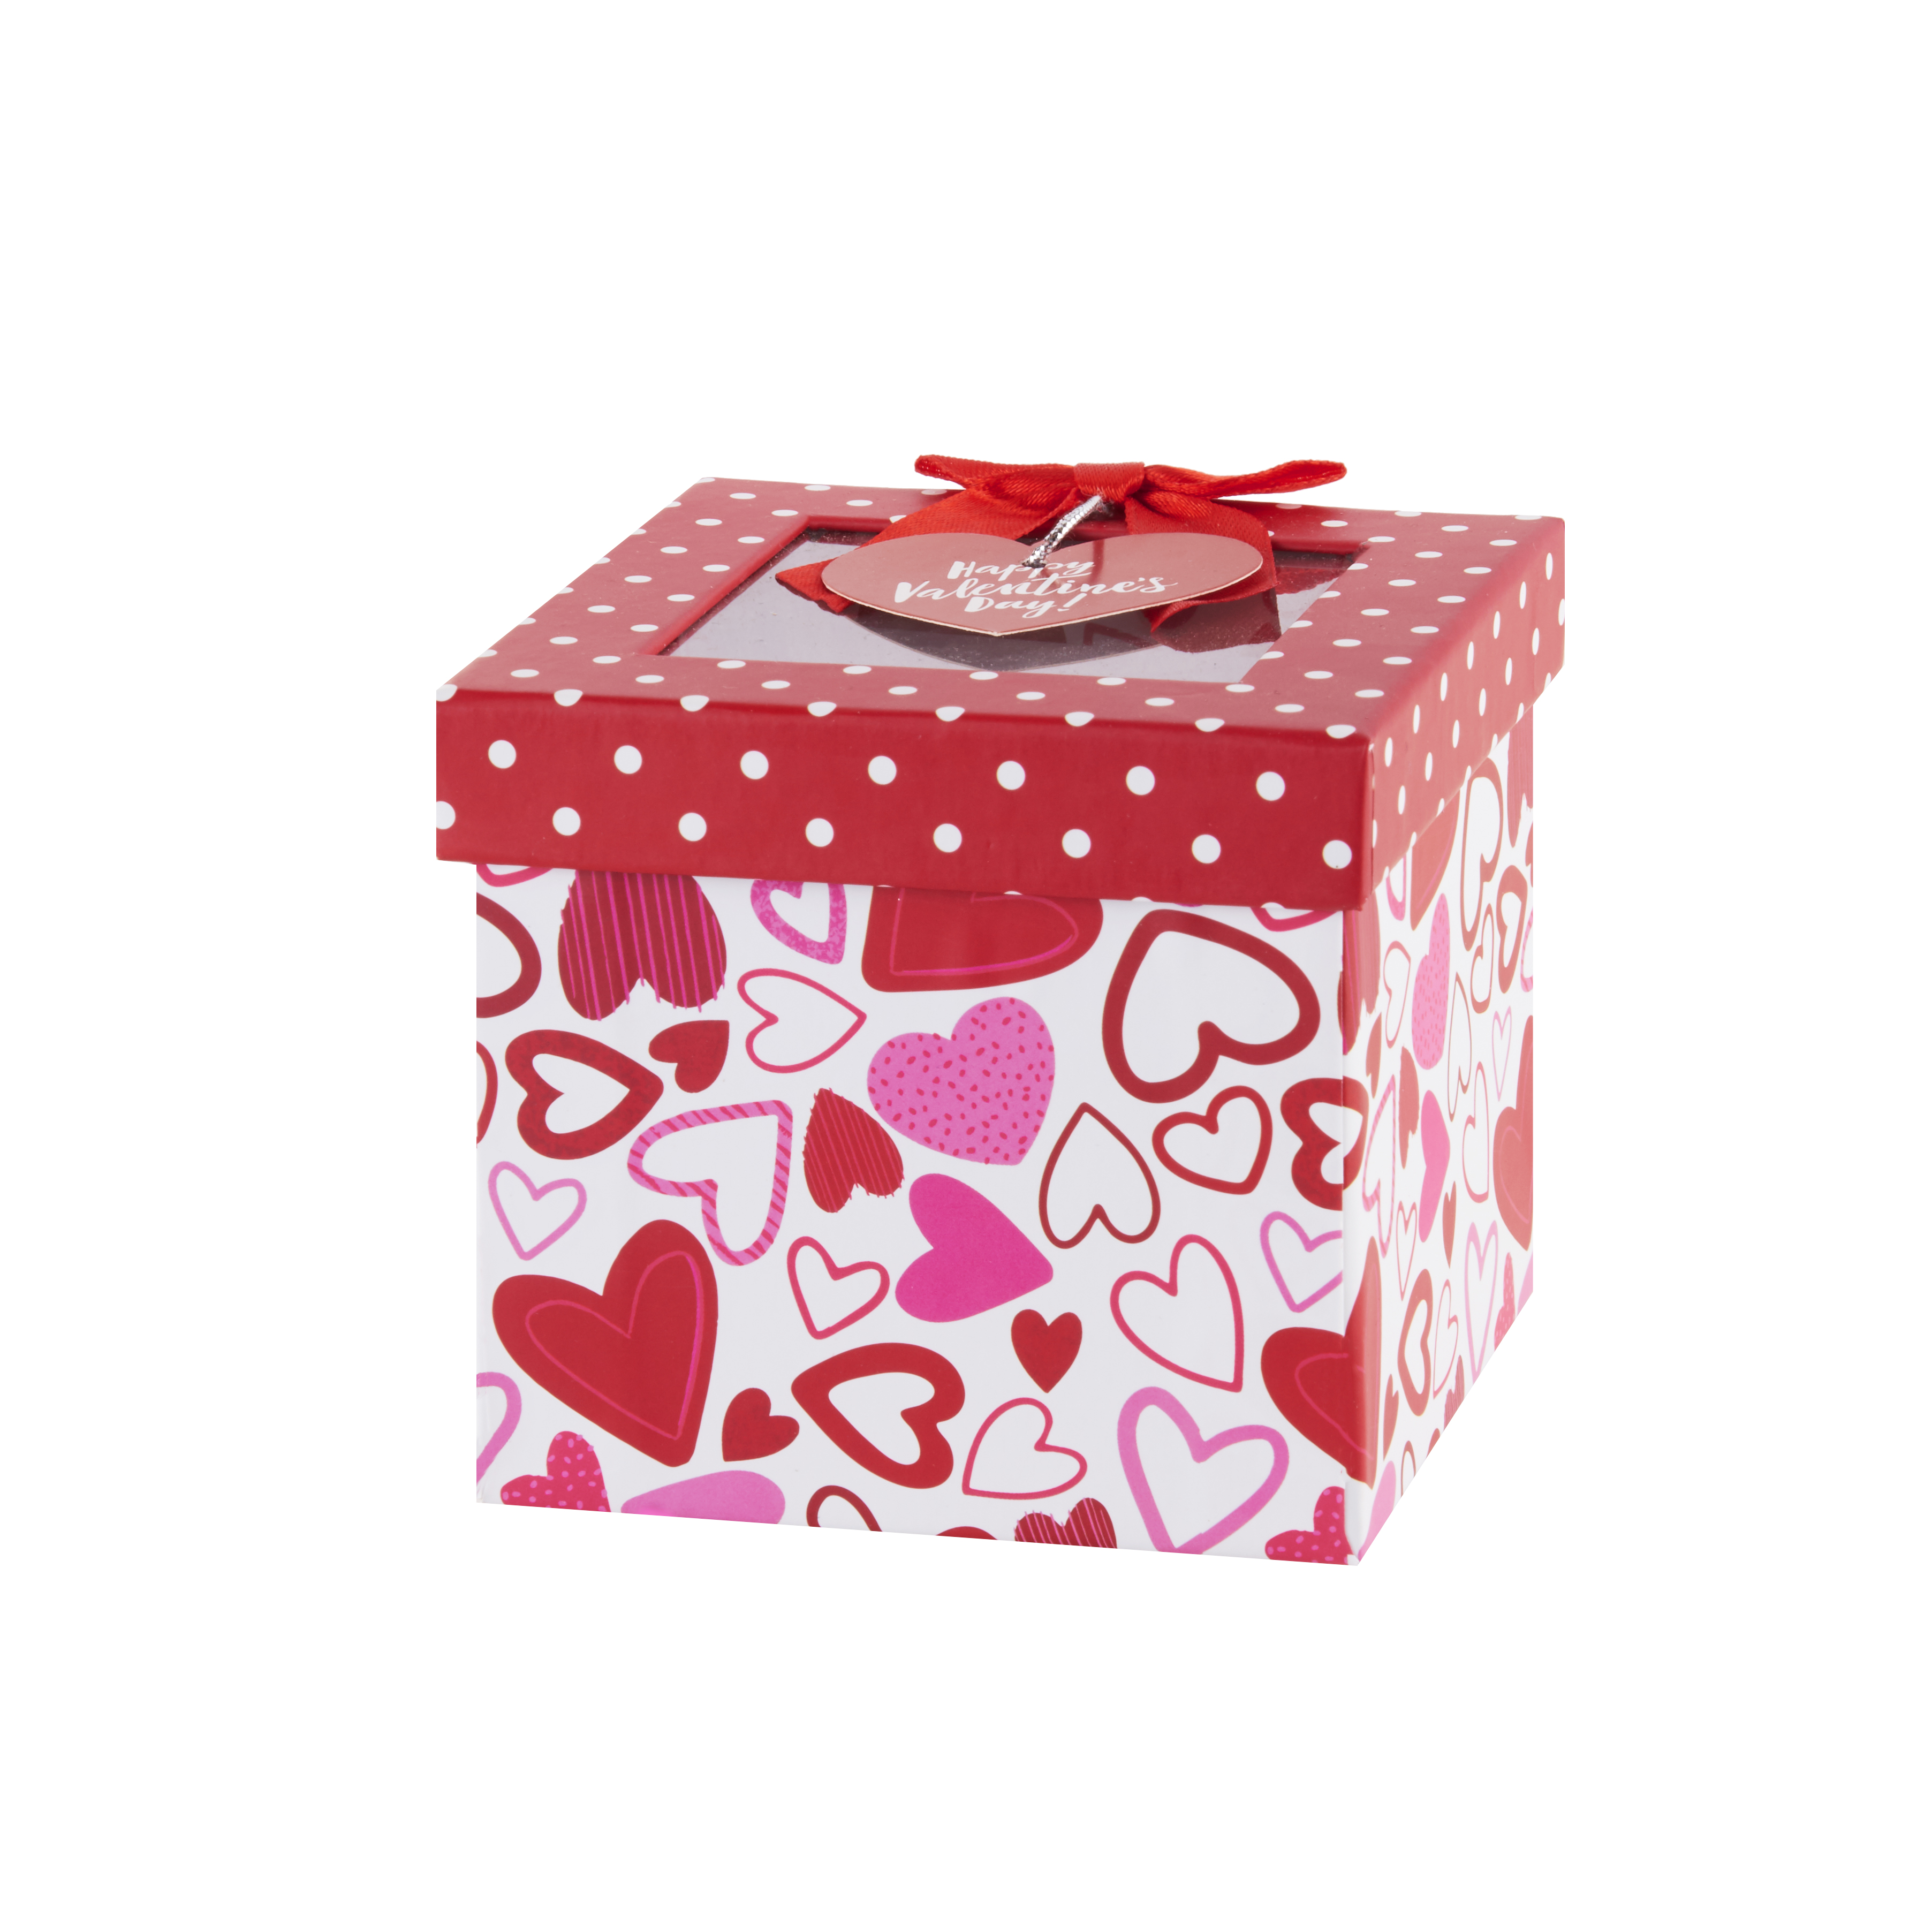 Way To Celebrate Valentine's Day Hearts and Dots Gift Box